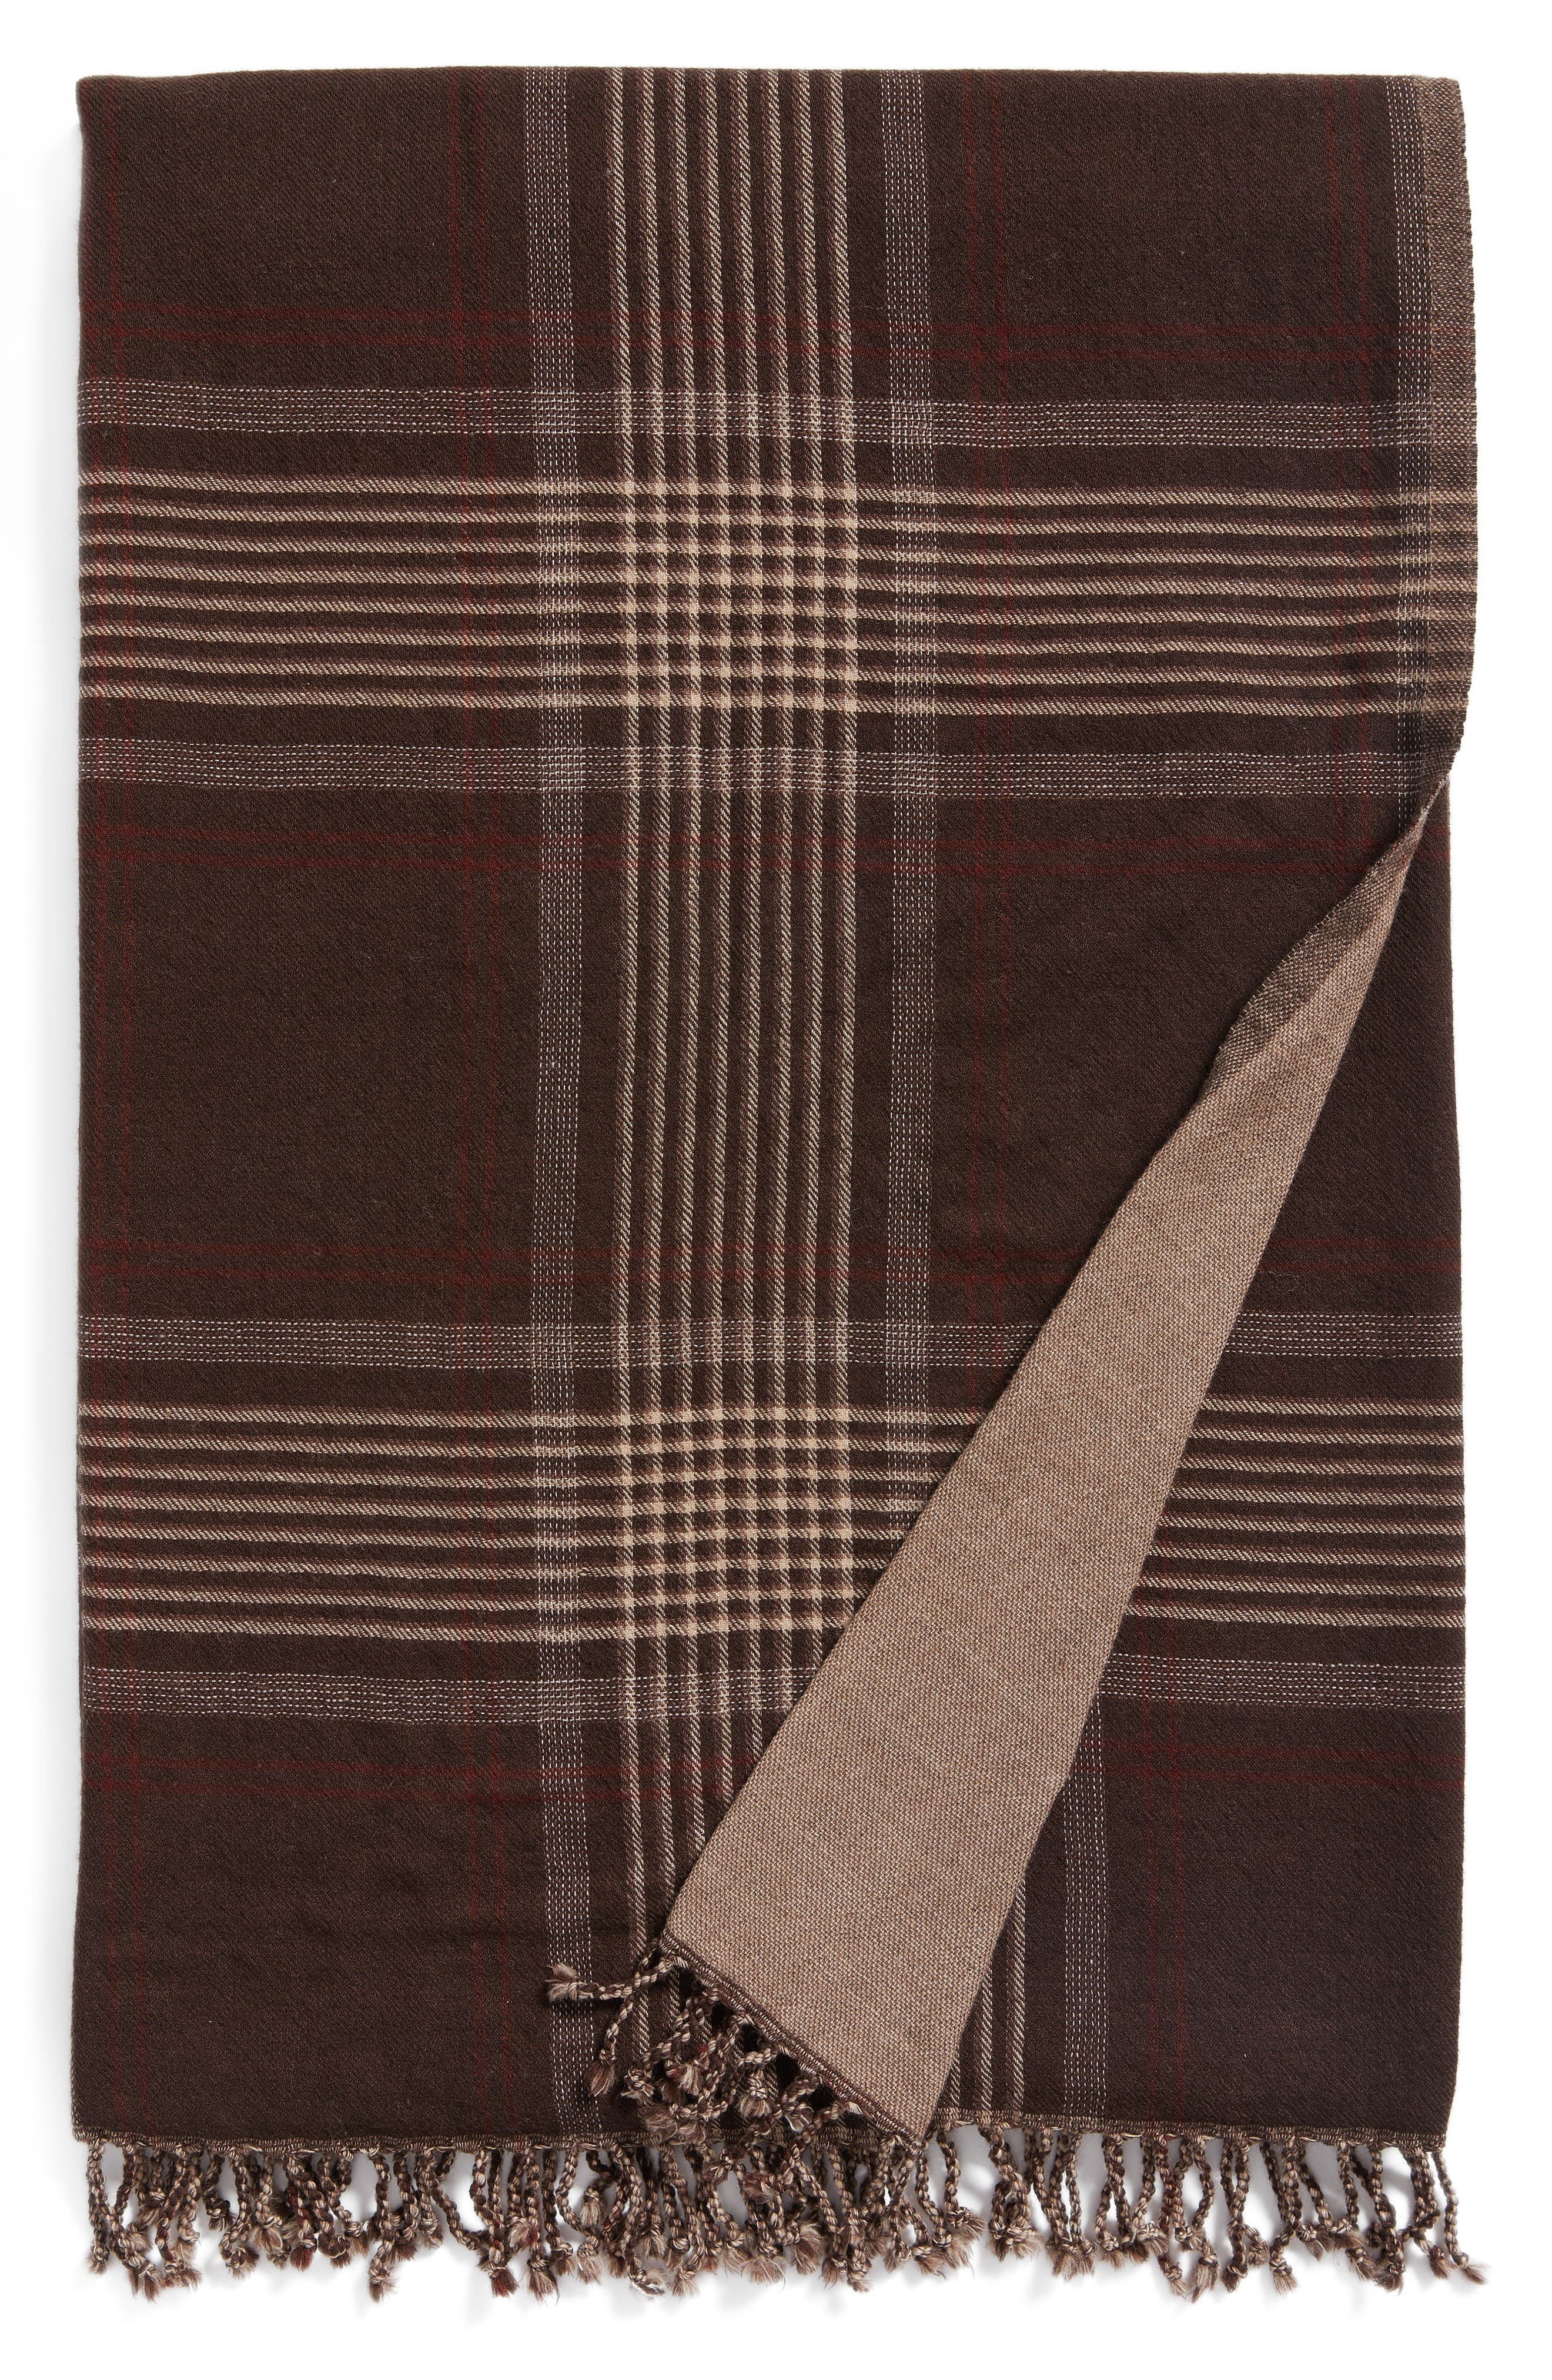 Main Image - Modern Staples Plaid Double Face Merino Wool Throw